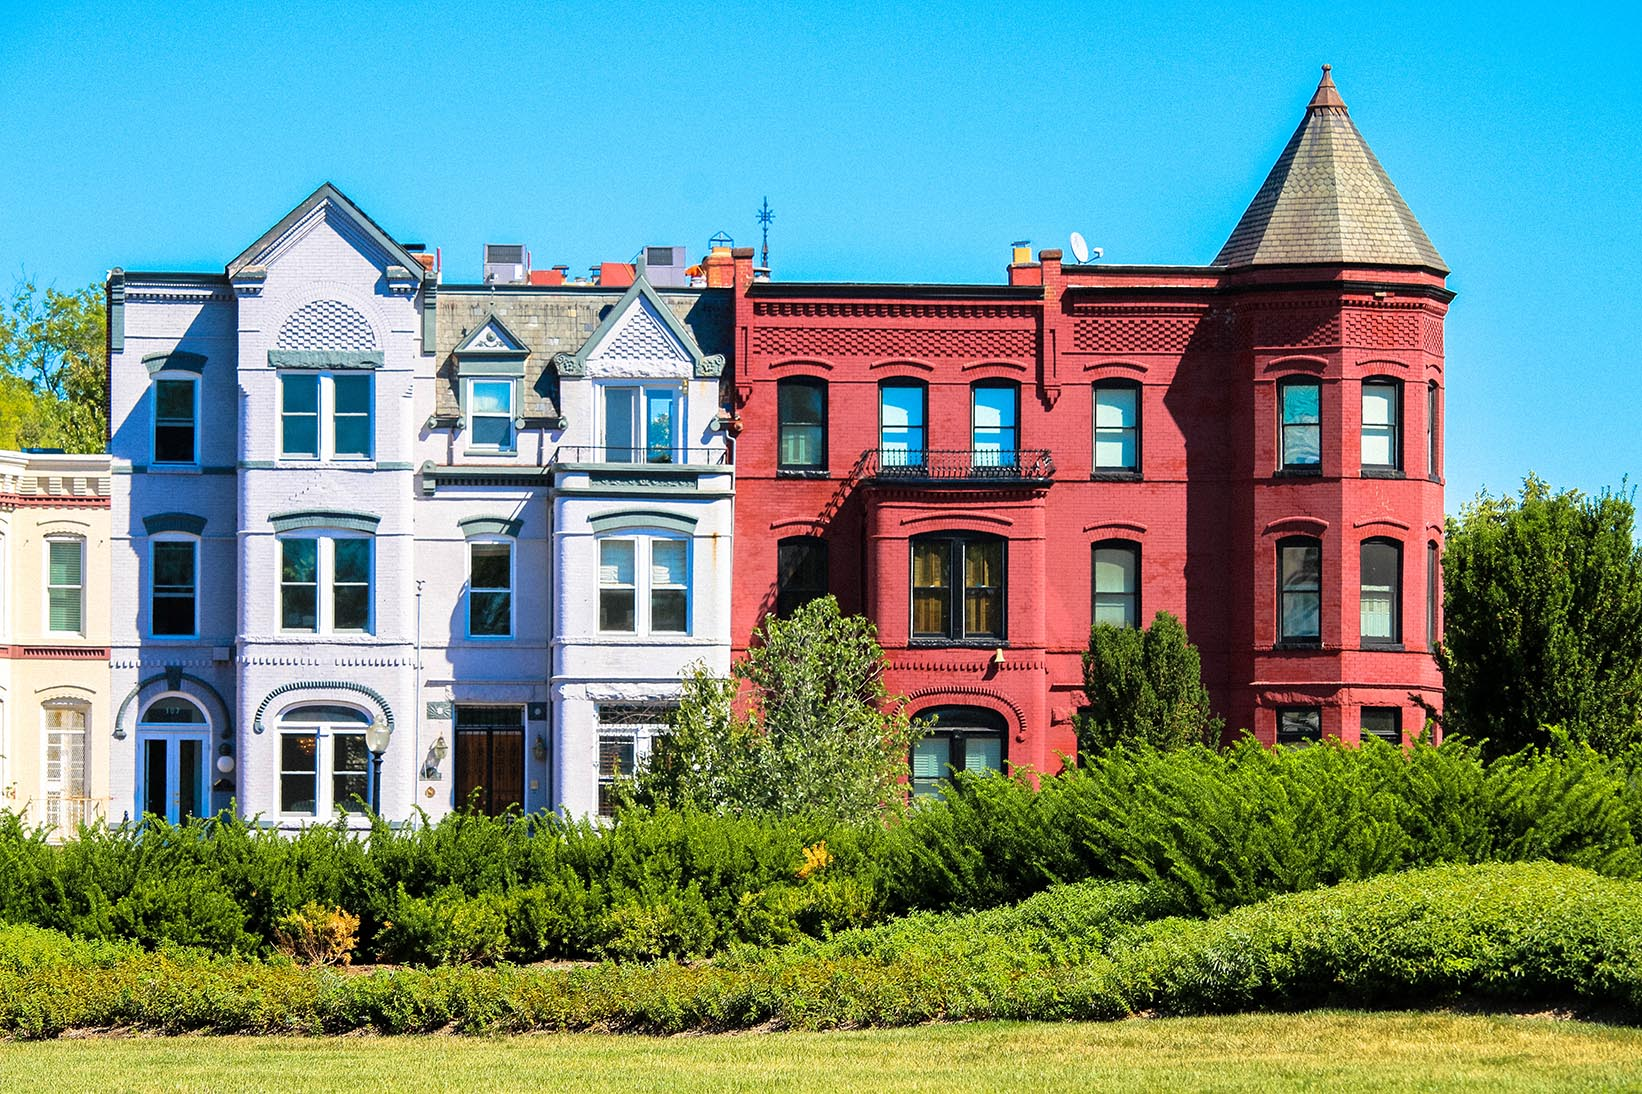 Rowhouses in Capitol Hill, Washington, DC